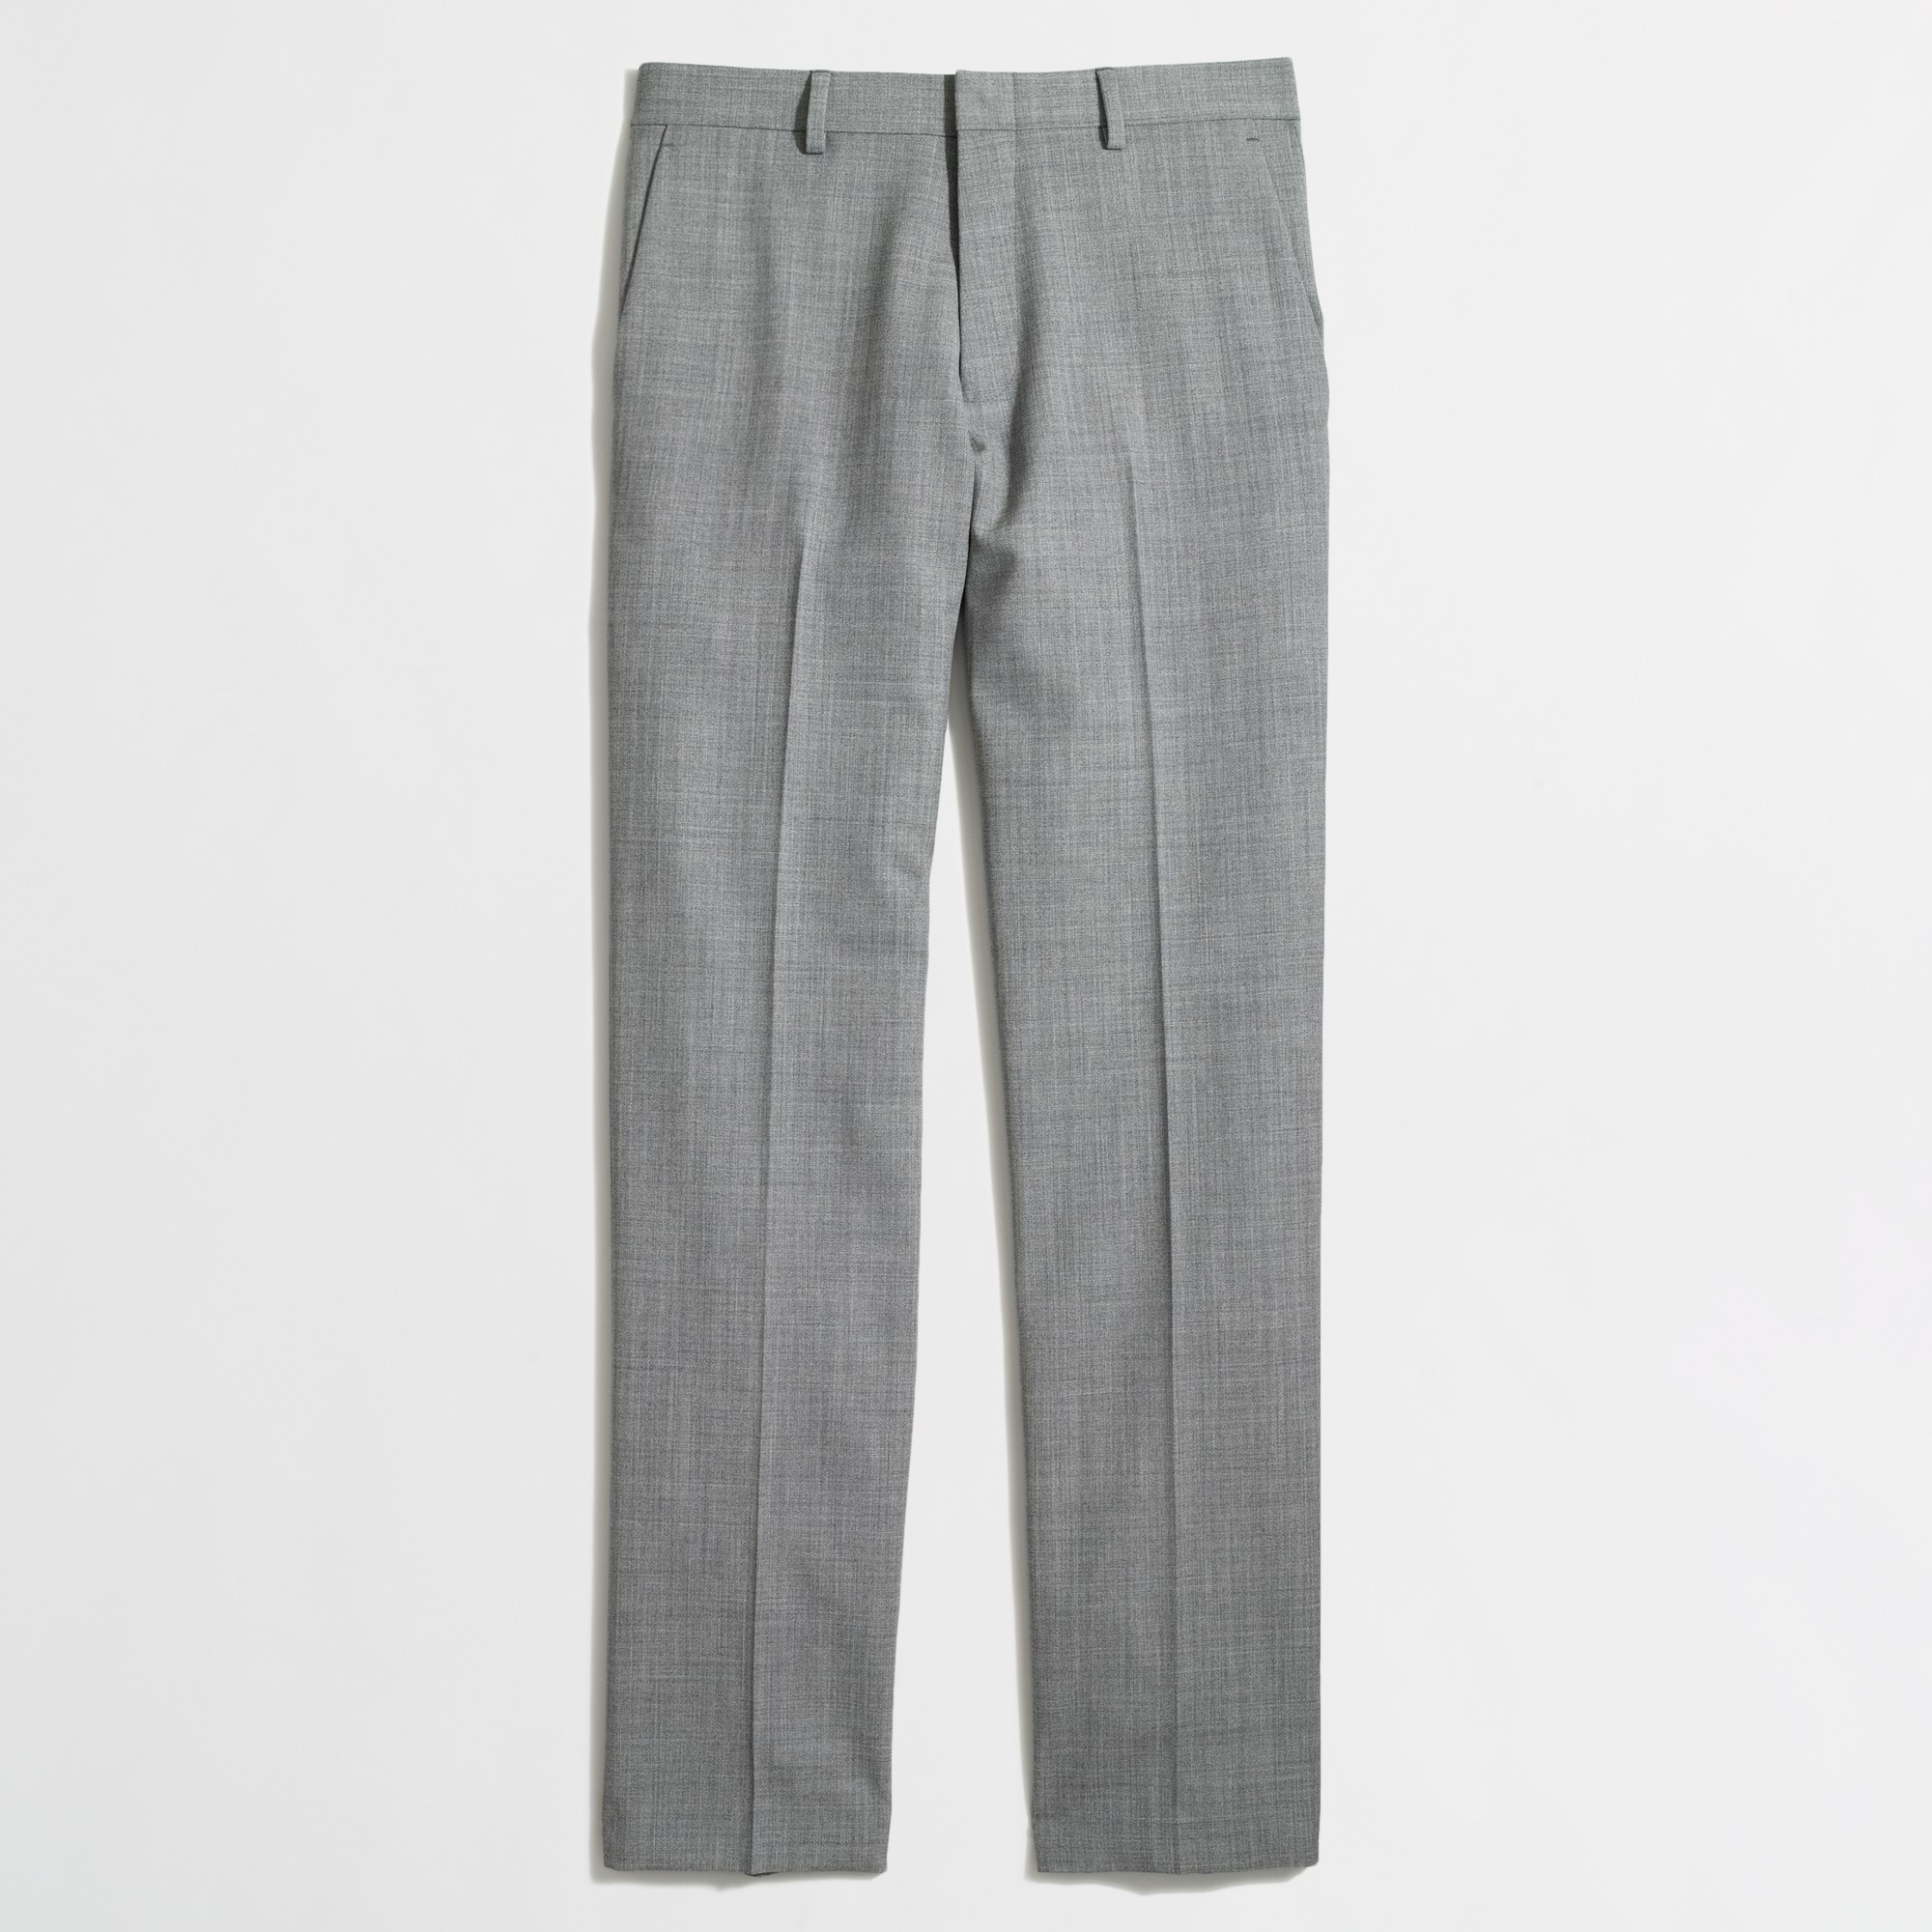 Image 4 for Slim-fit Thompson suit pant in Voyager wool